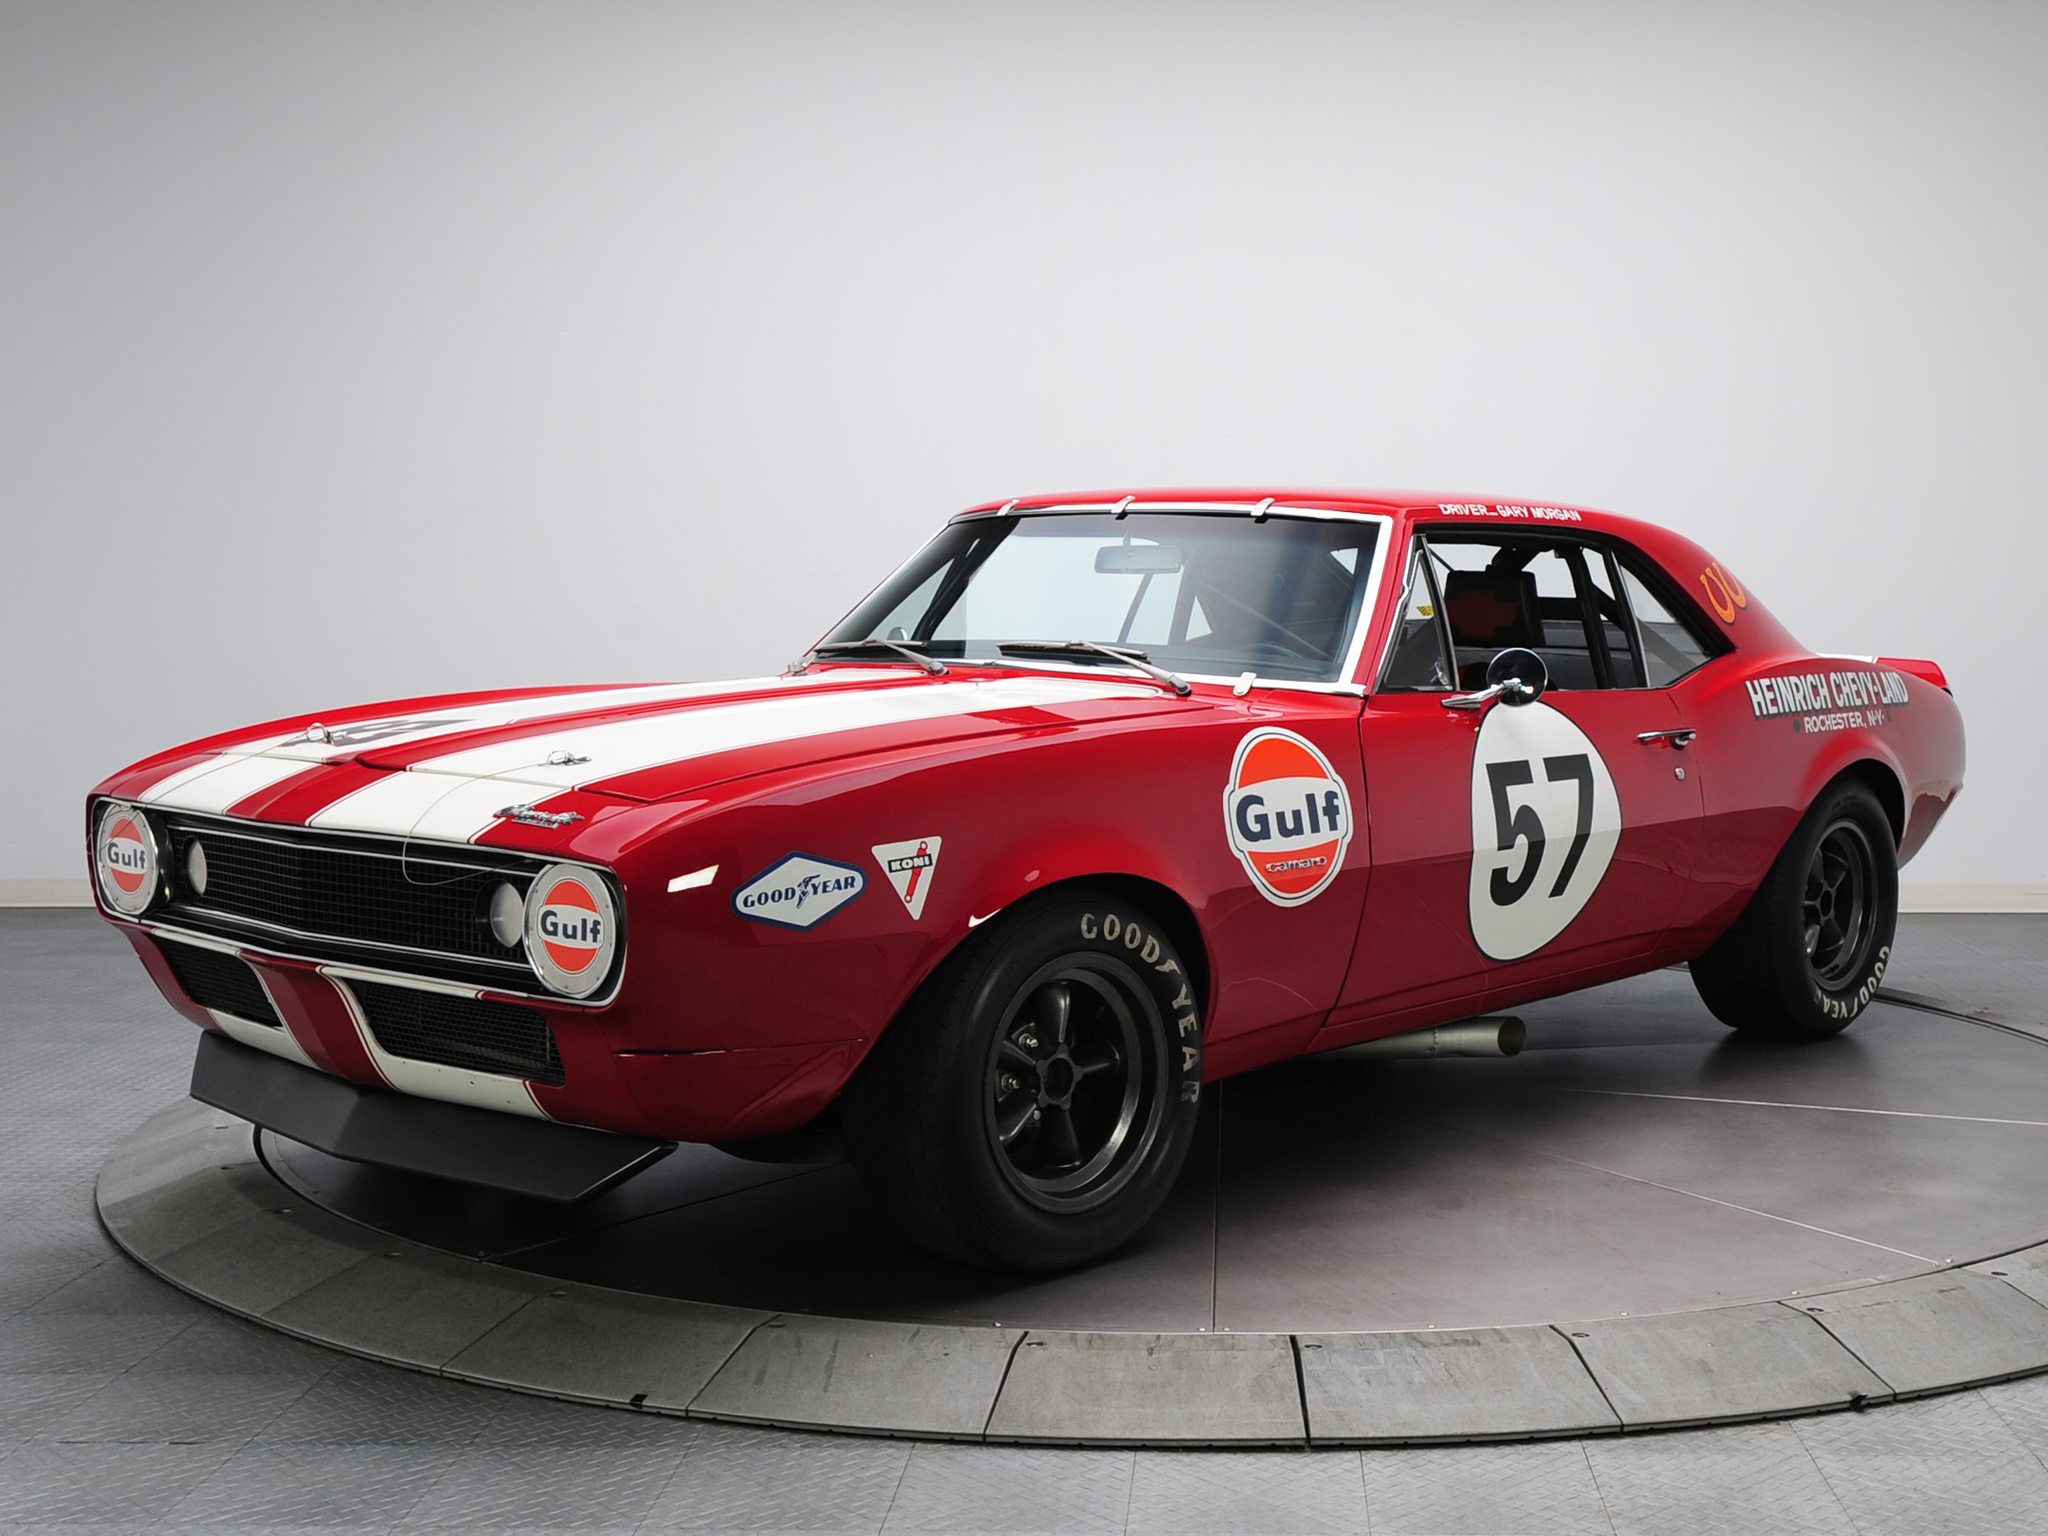 1967 Chevrolet Camaro Z-28 Pre-production Trans-Am Race Car racing muscle classic hot rod rods  h